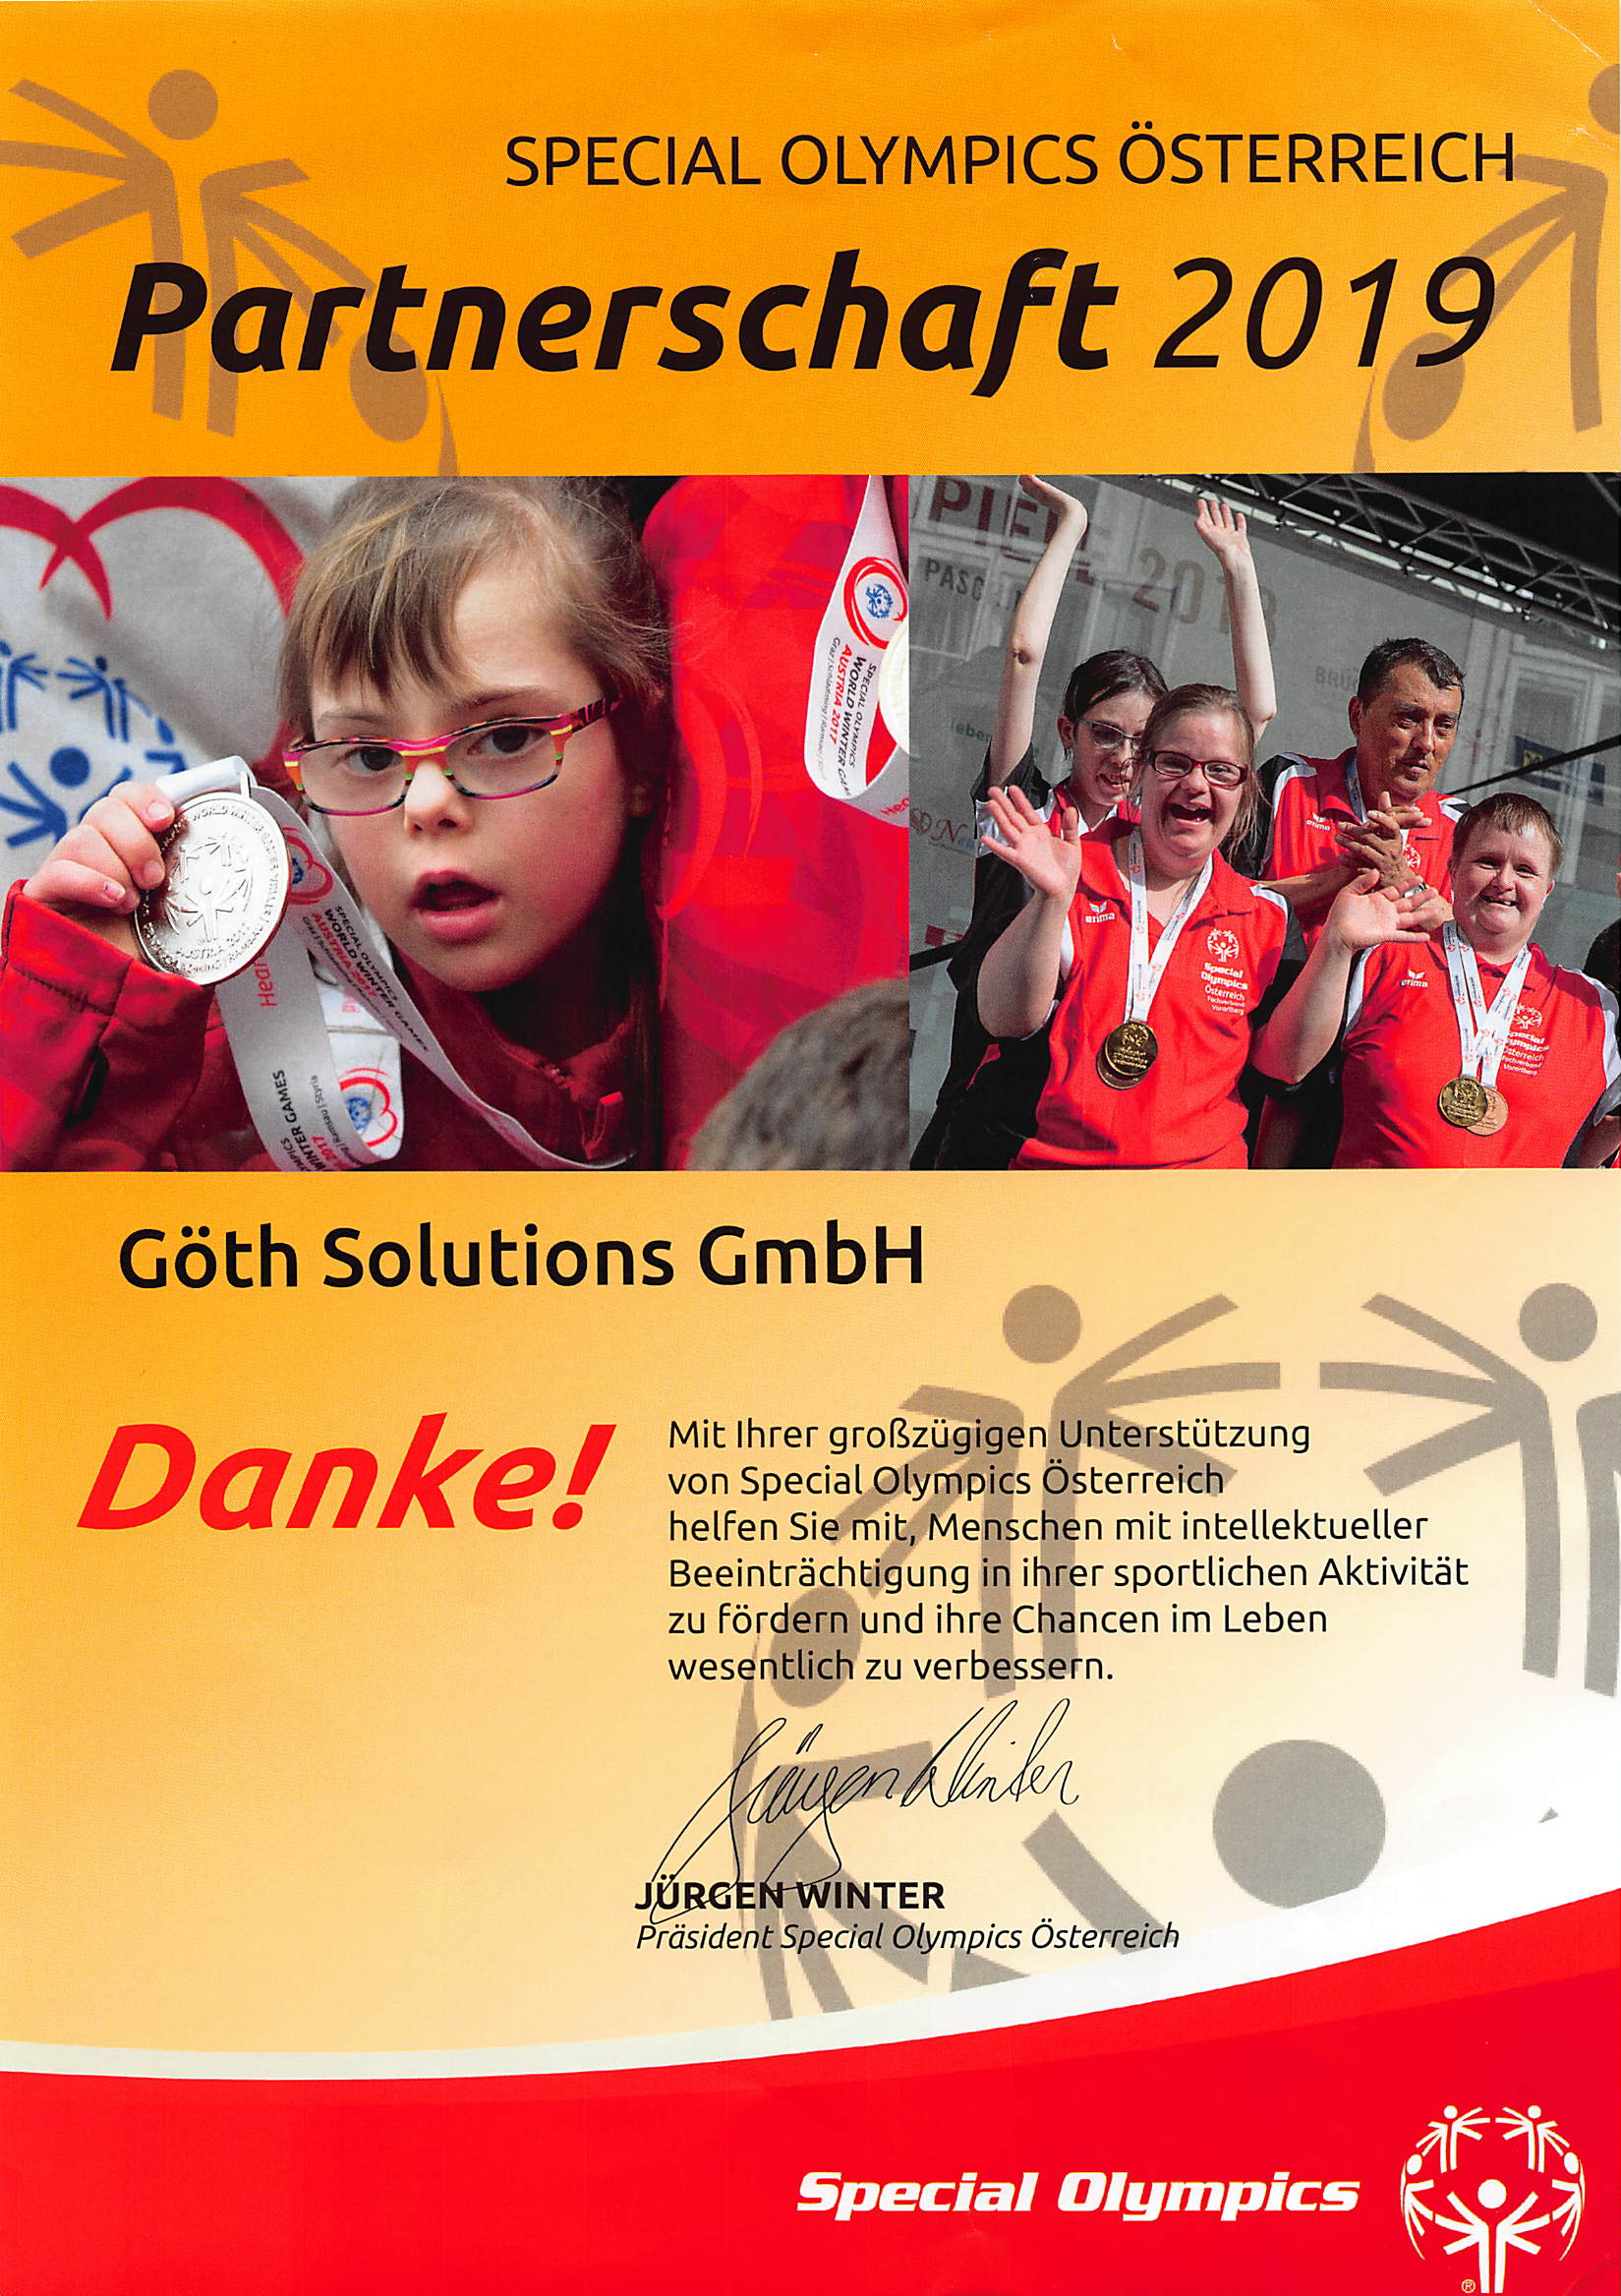 GÖTH Solutions - Special Olympics 2019